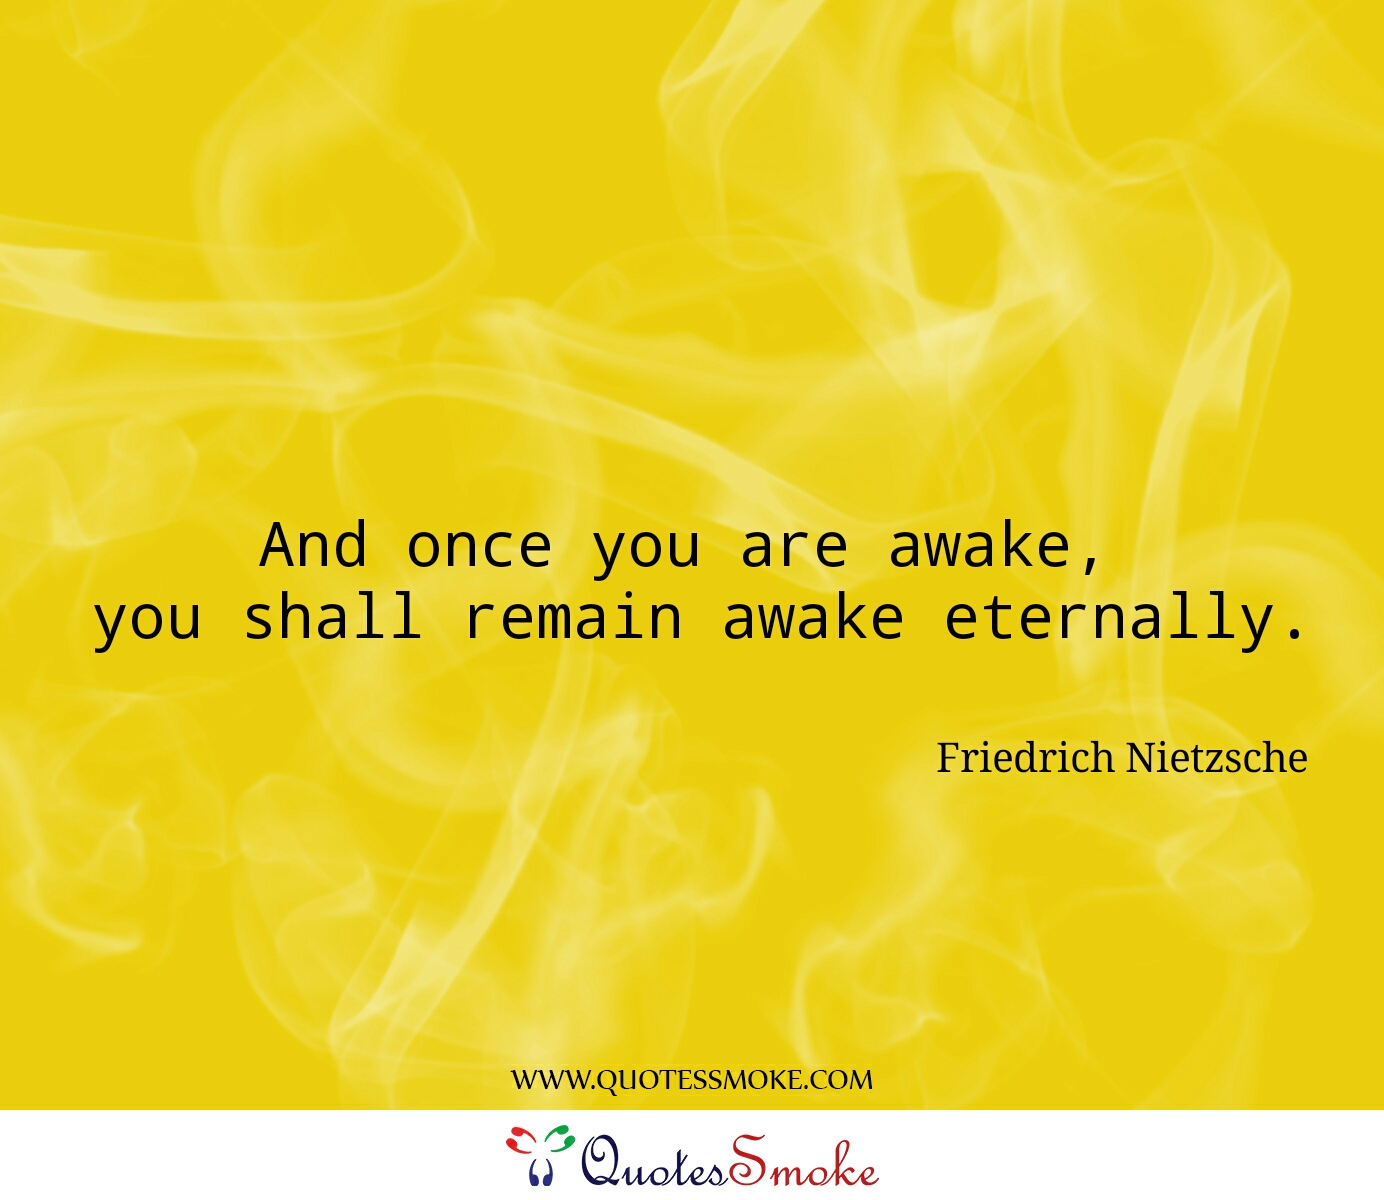 110 Phenomenal Friedrich Nietzsche Quotes To Learn From Quotes Smoke